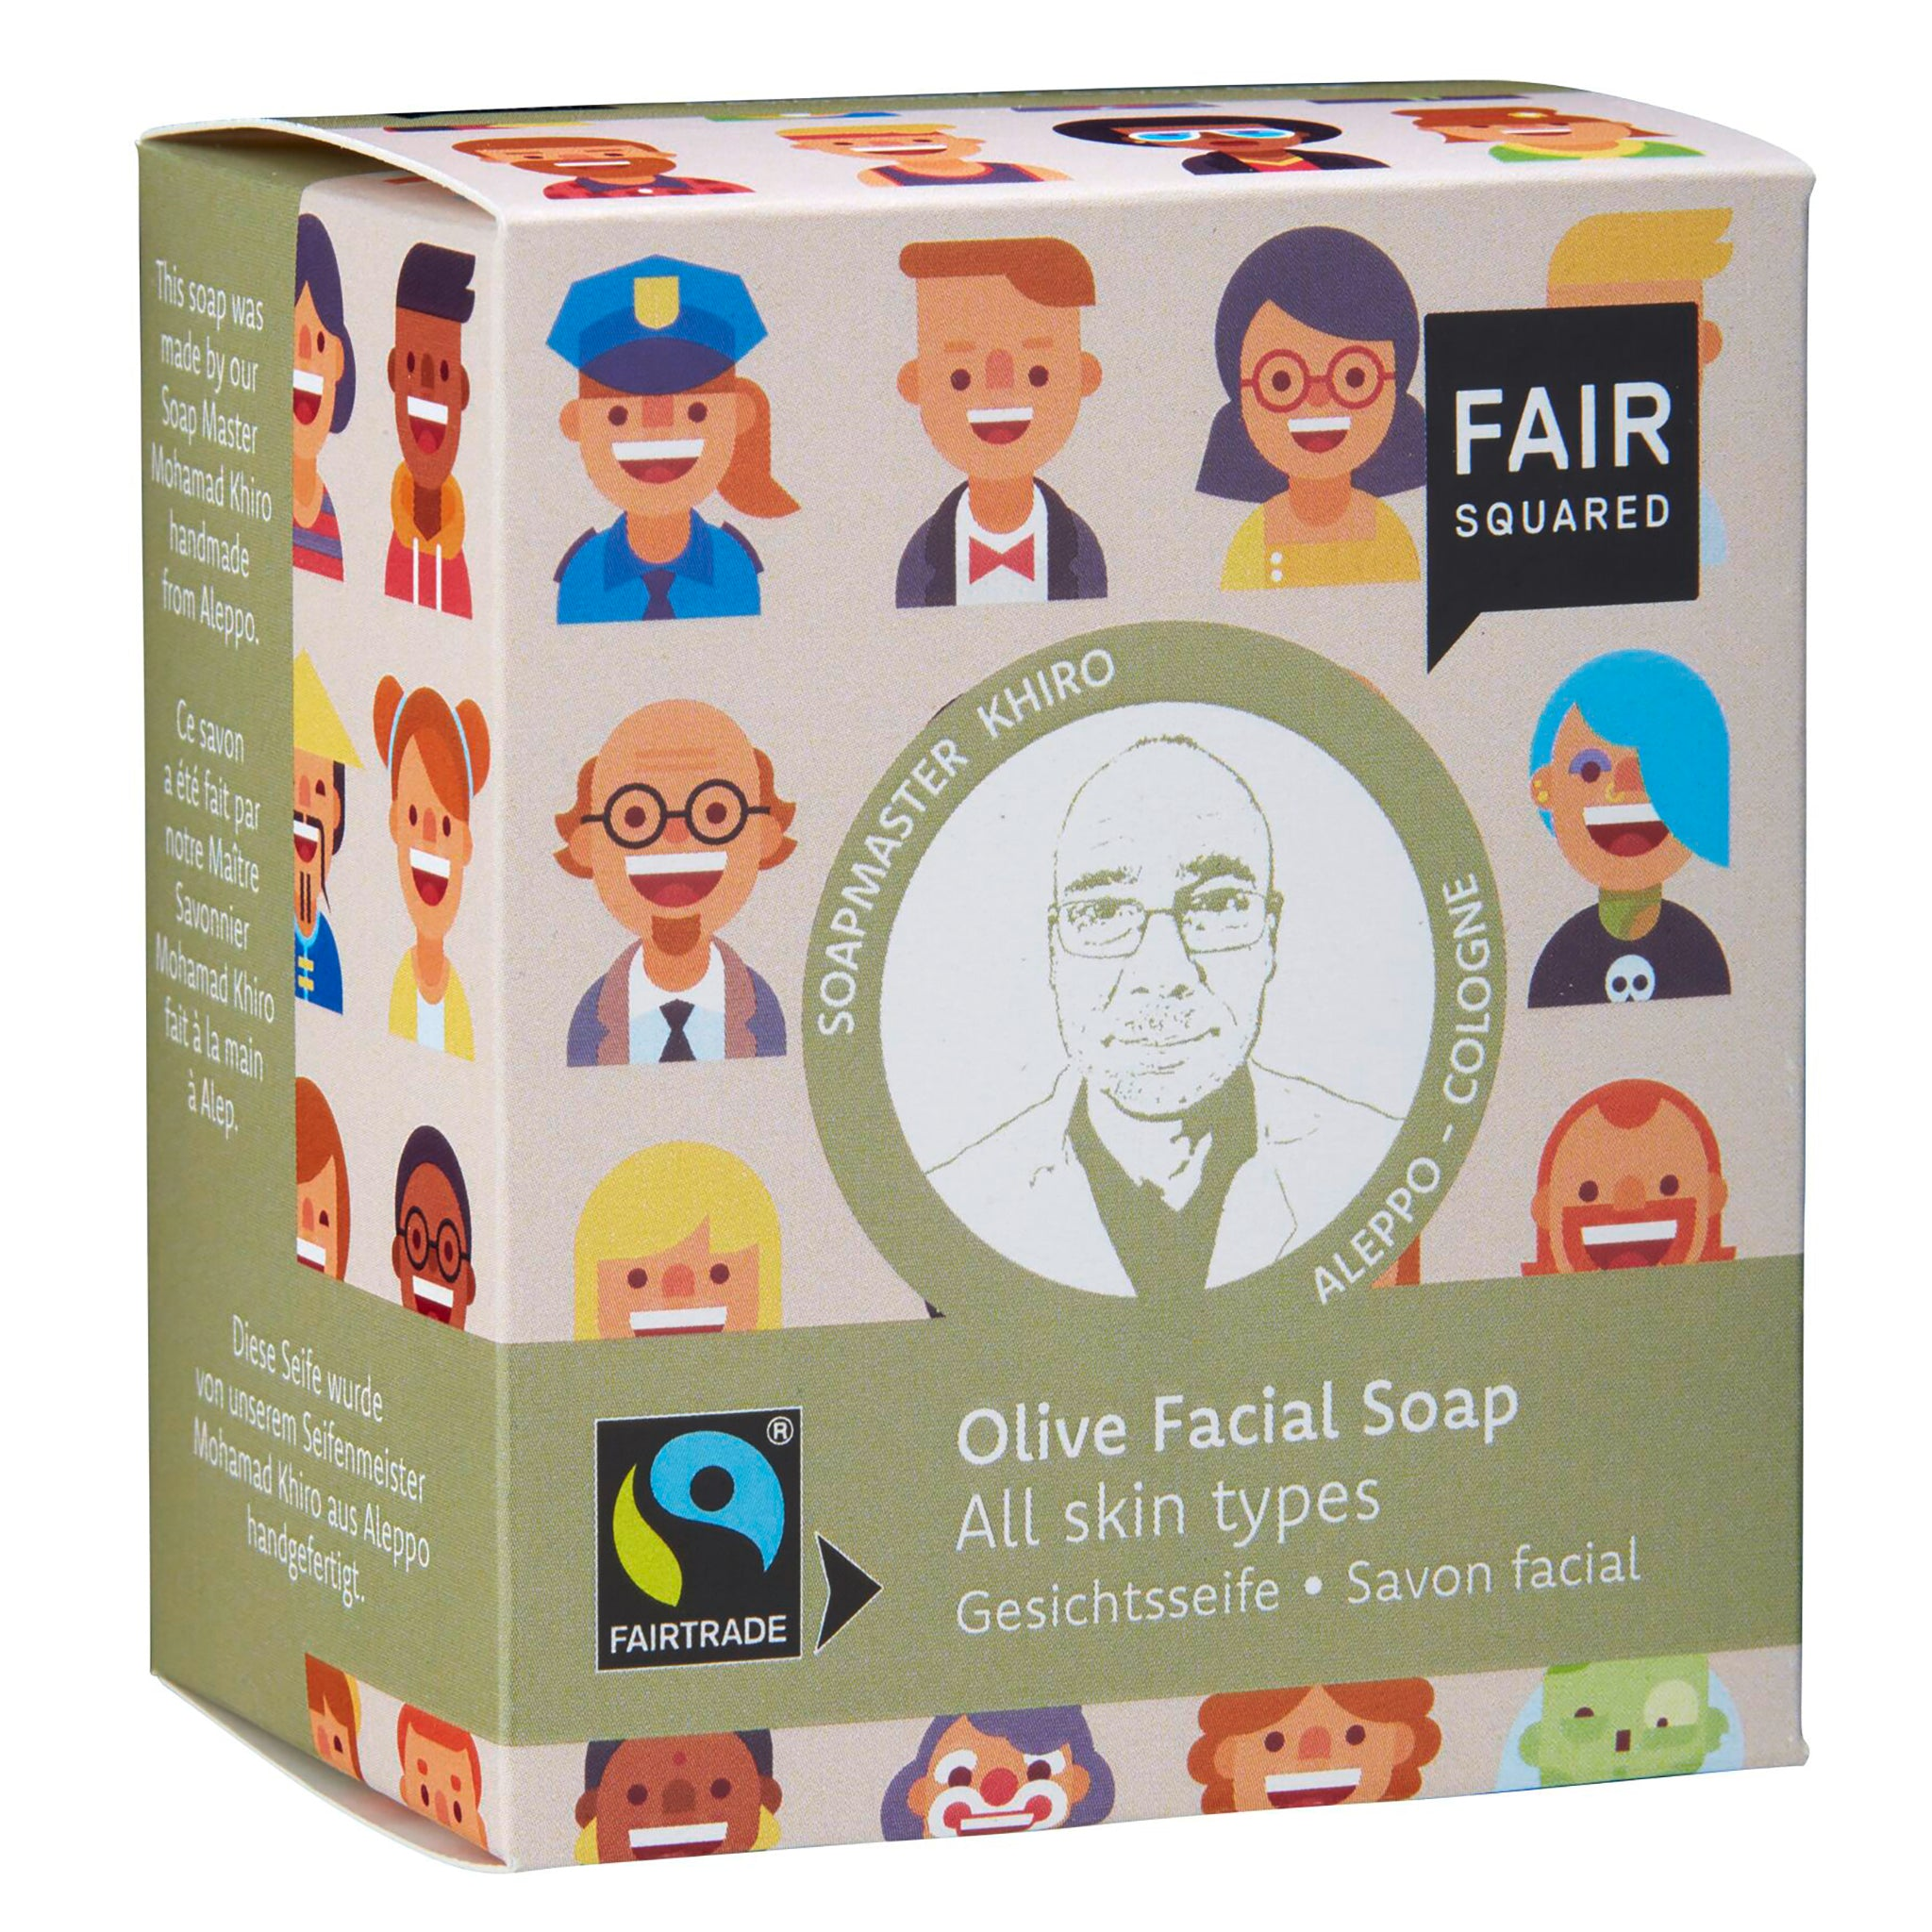 Olive Facial Soap with Cotton Soap Bag - For All Skin Types